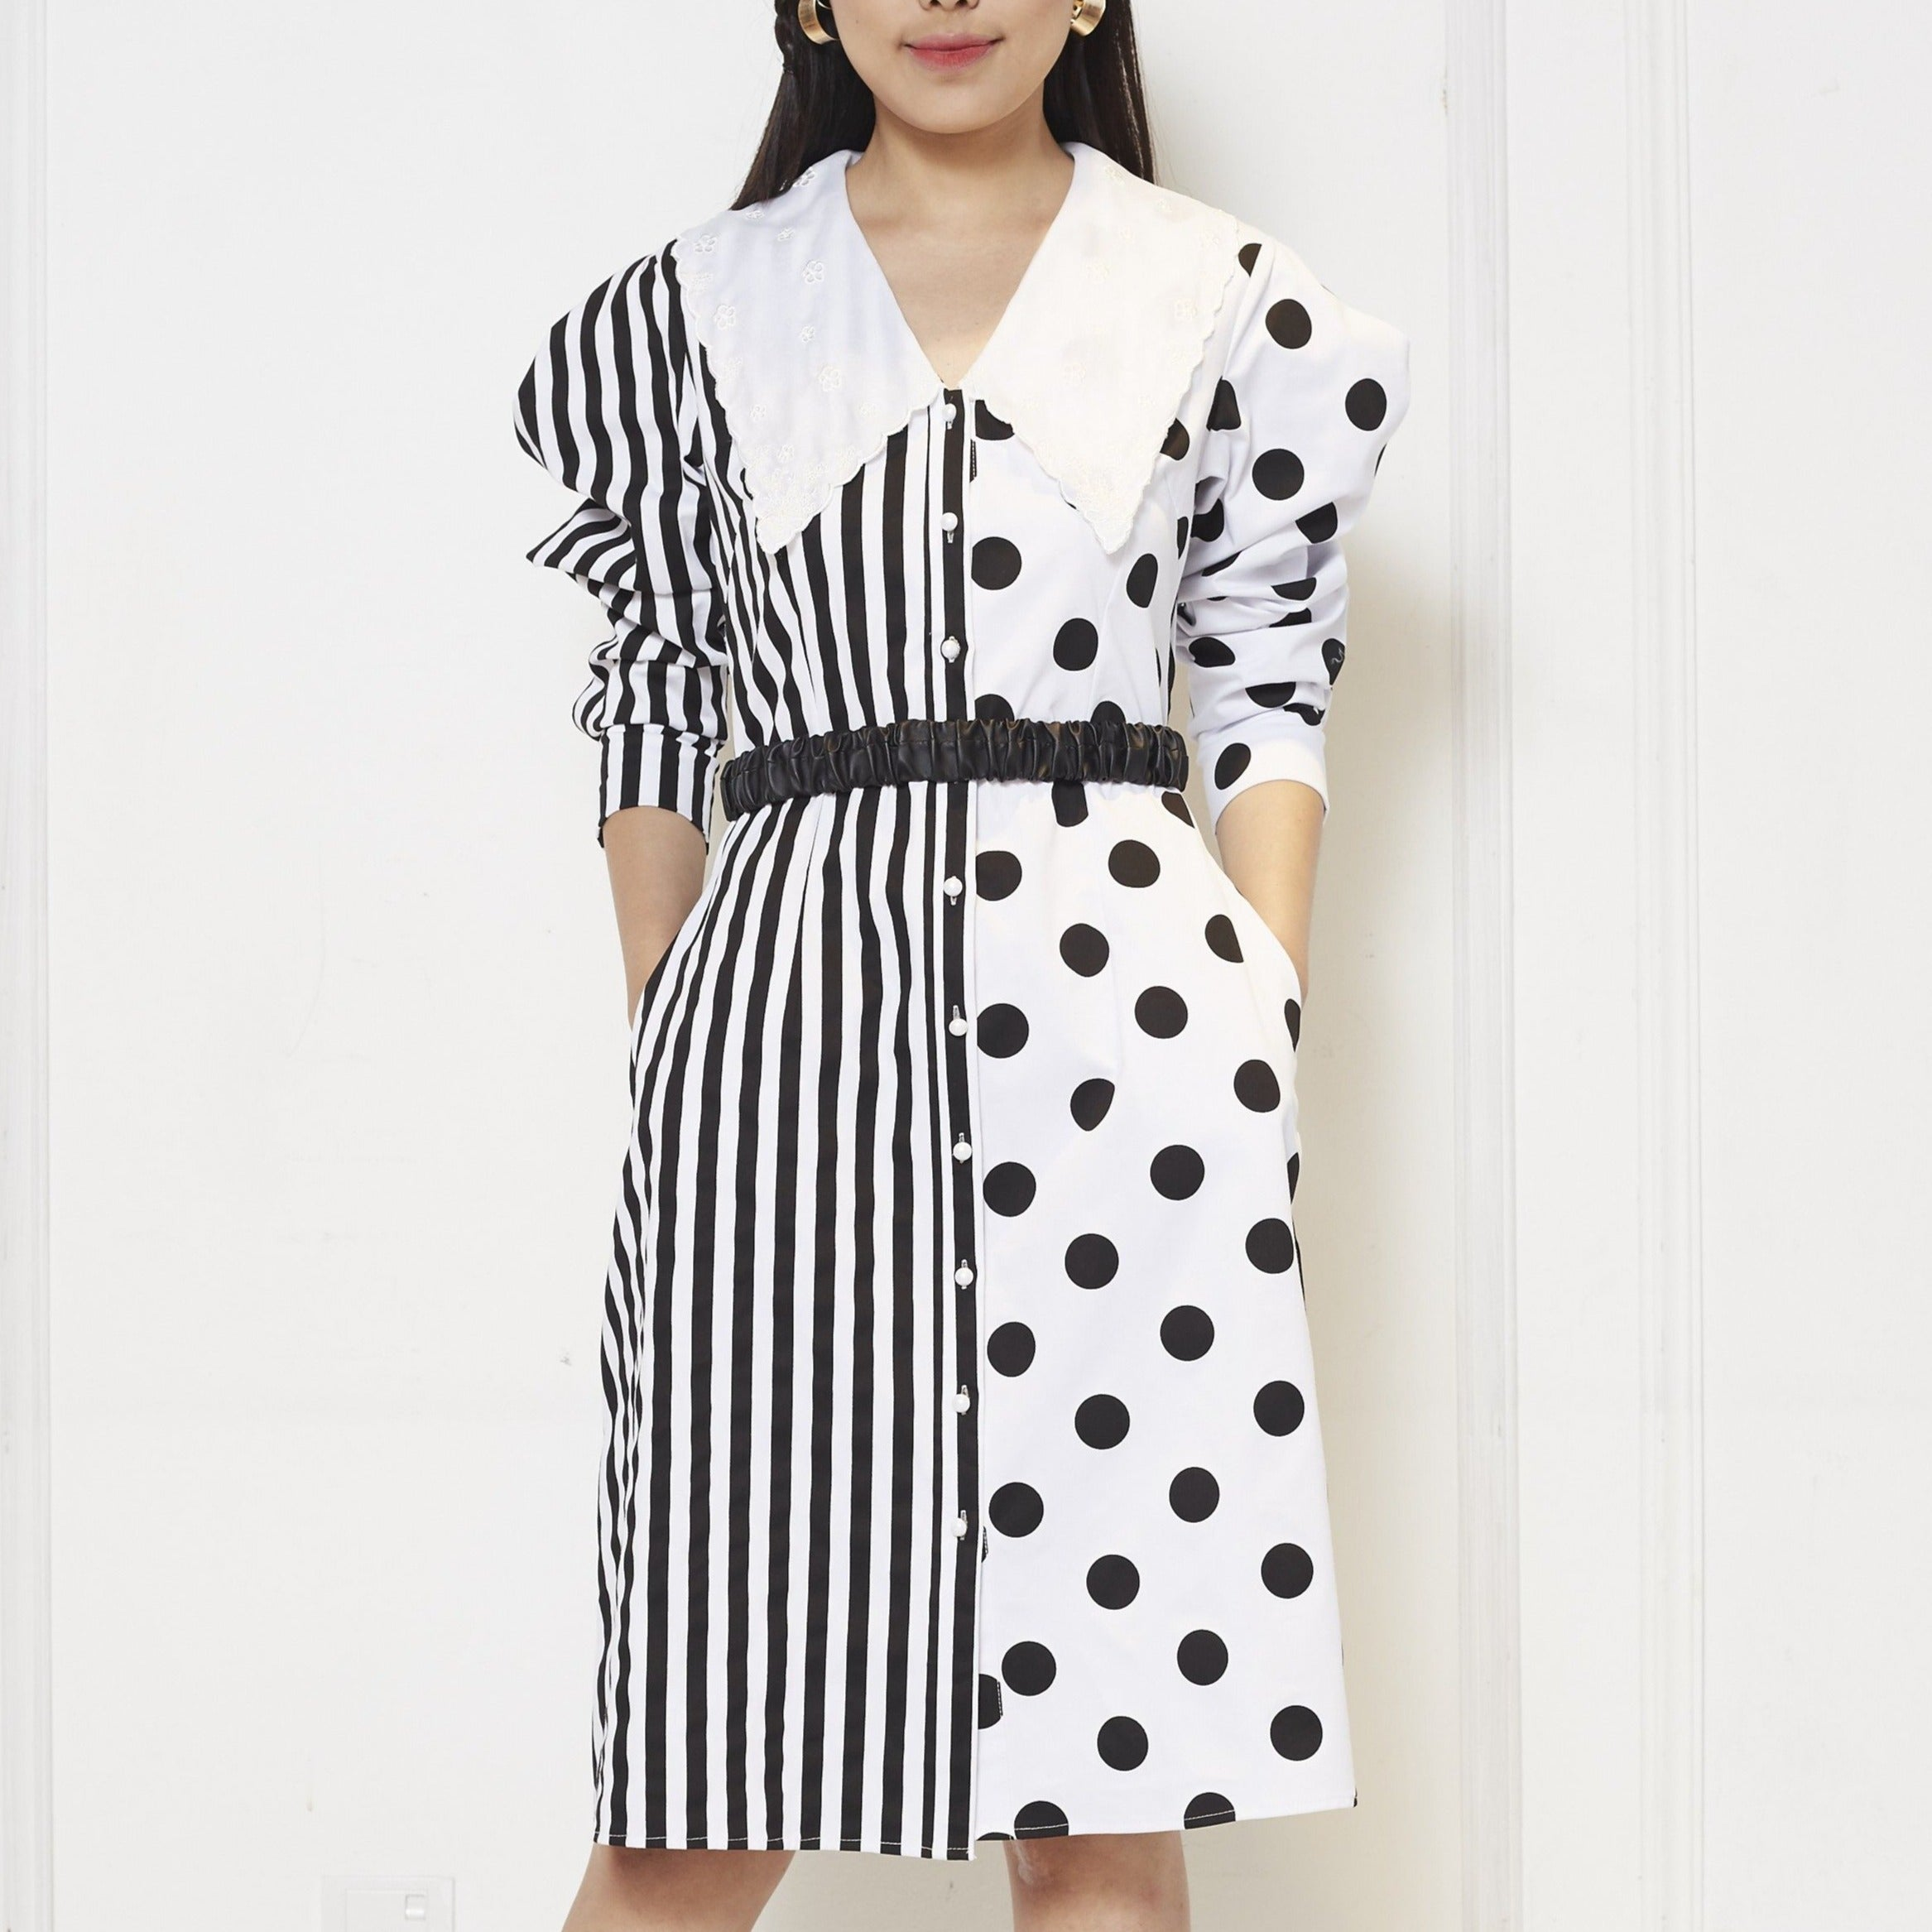 Stripe Polka Dress